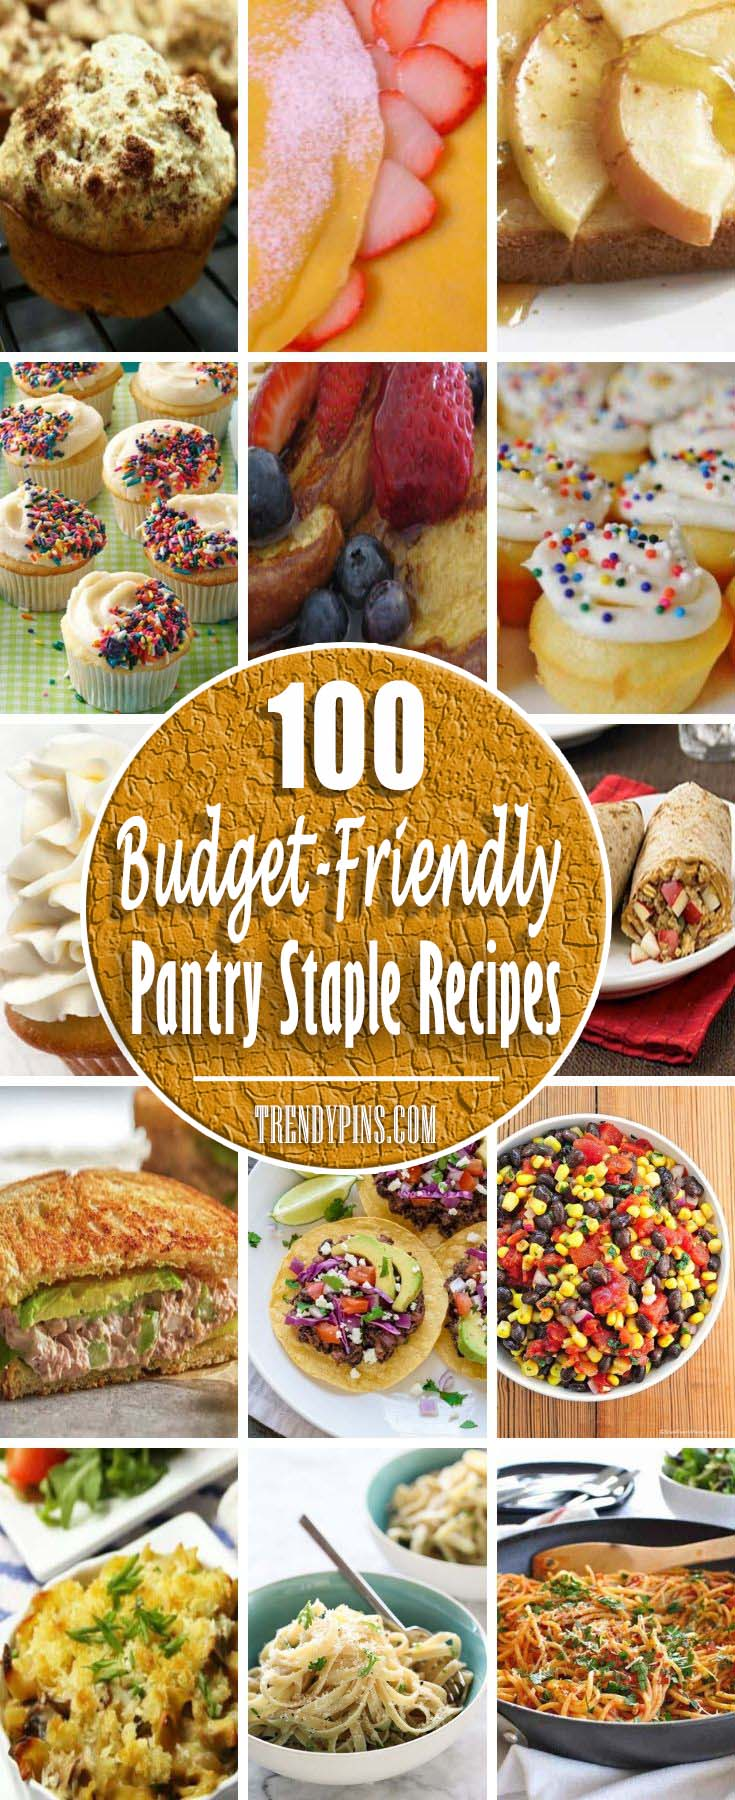 Every housewife should have on hand some basic items at all times #pantry #staple #recipes #trendypins